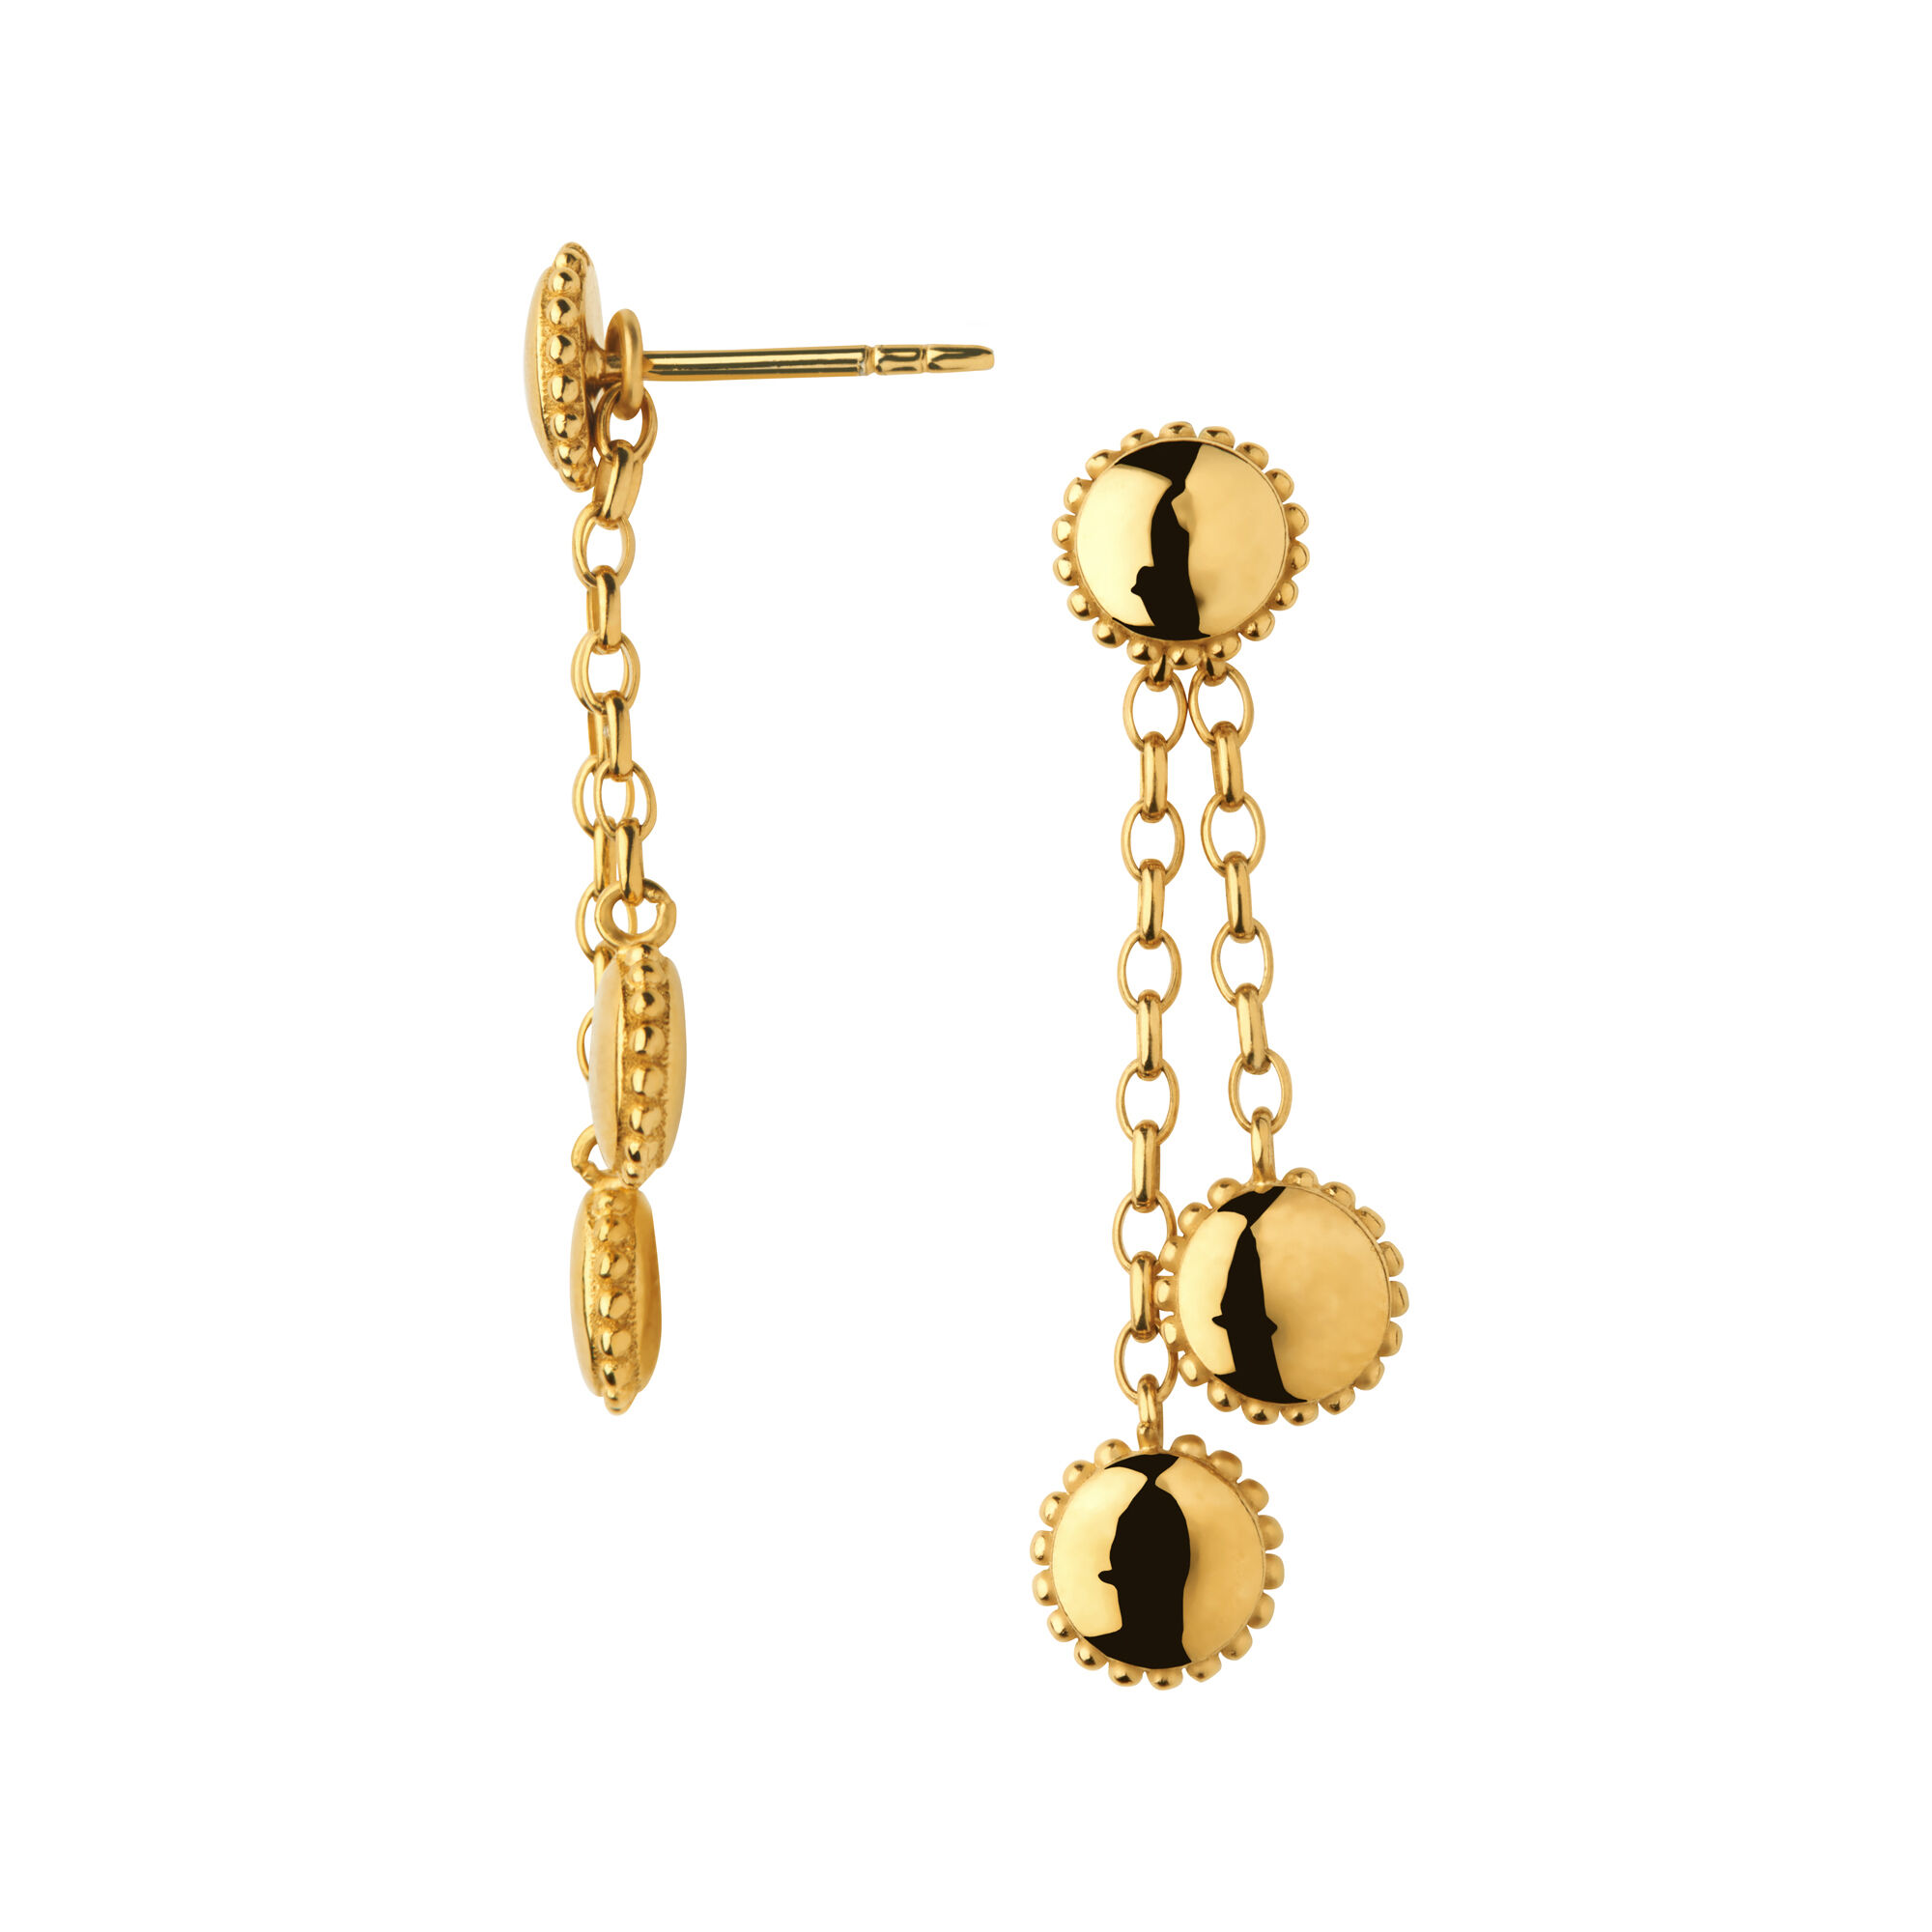 rings kosi aqua jewellery earrings oliver bonas ear gold